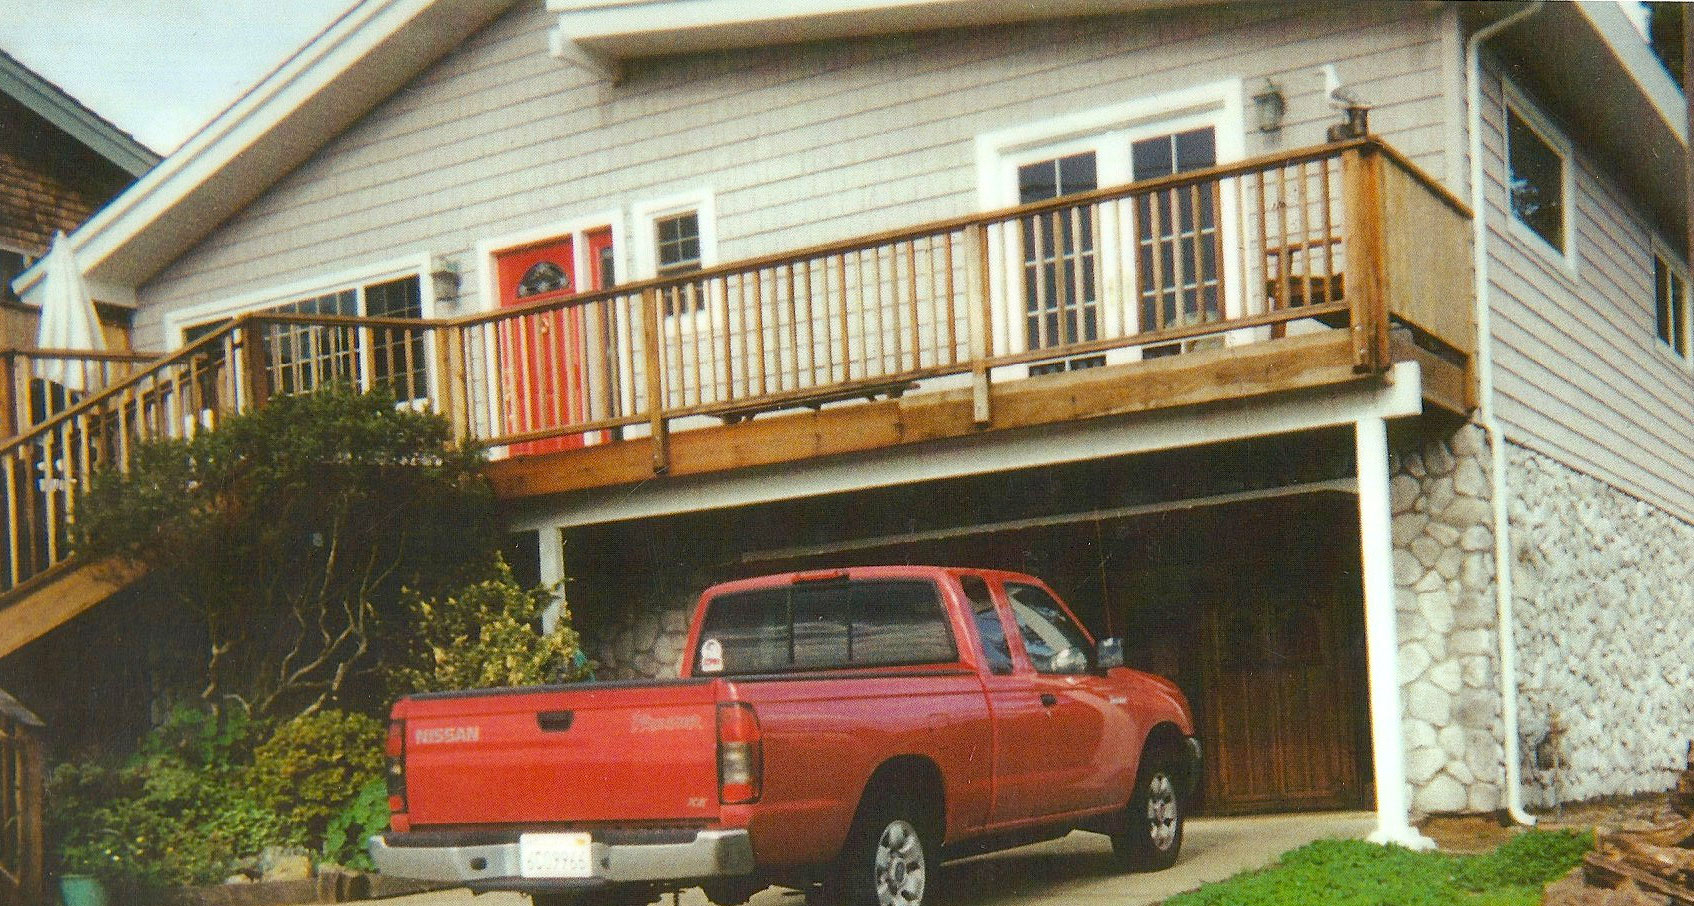 home-rennovated-with-new-siding-and-windows-by-Airtight